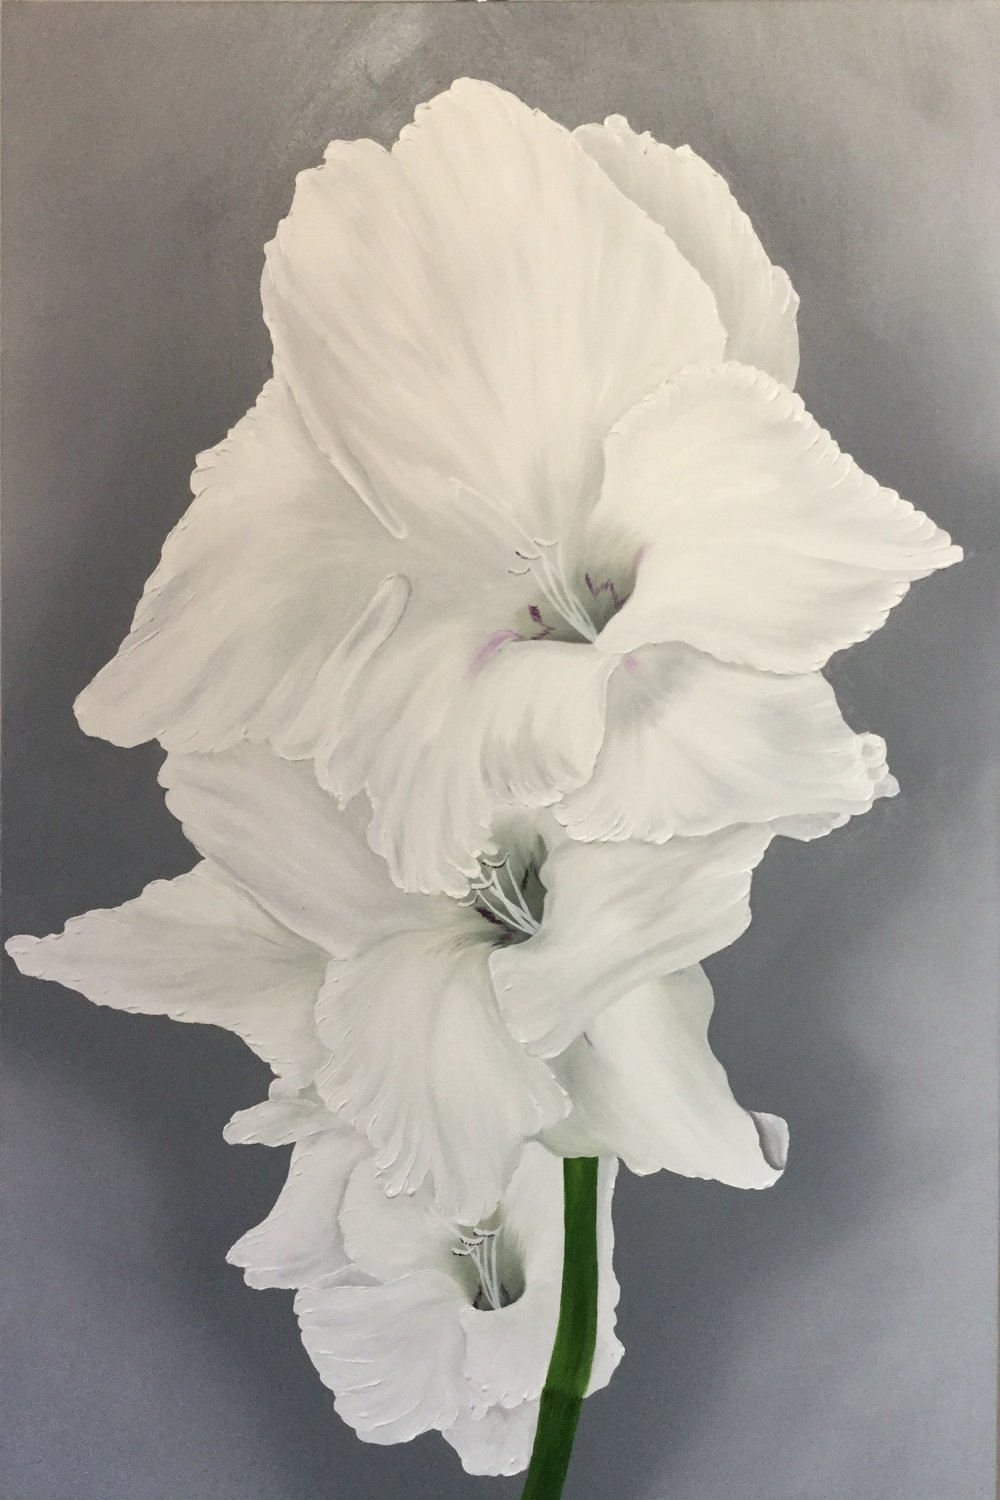 White Gladiolus Triple , 2017 3624725156817 Oil on canvas 36 x 24 inches